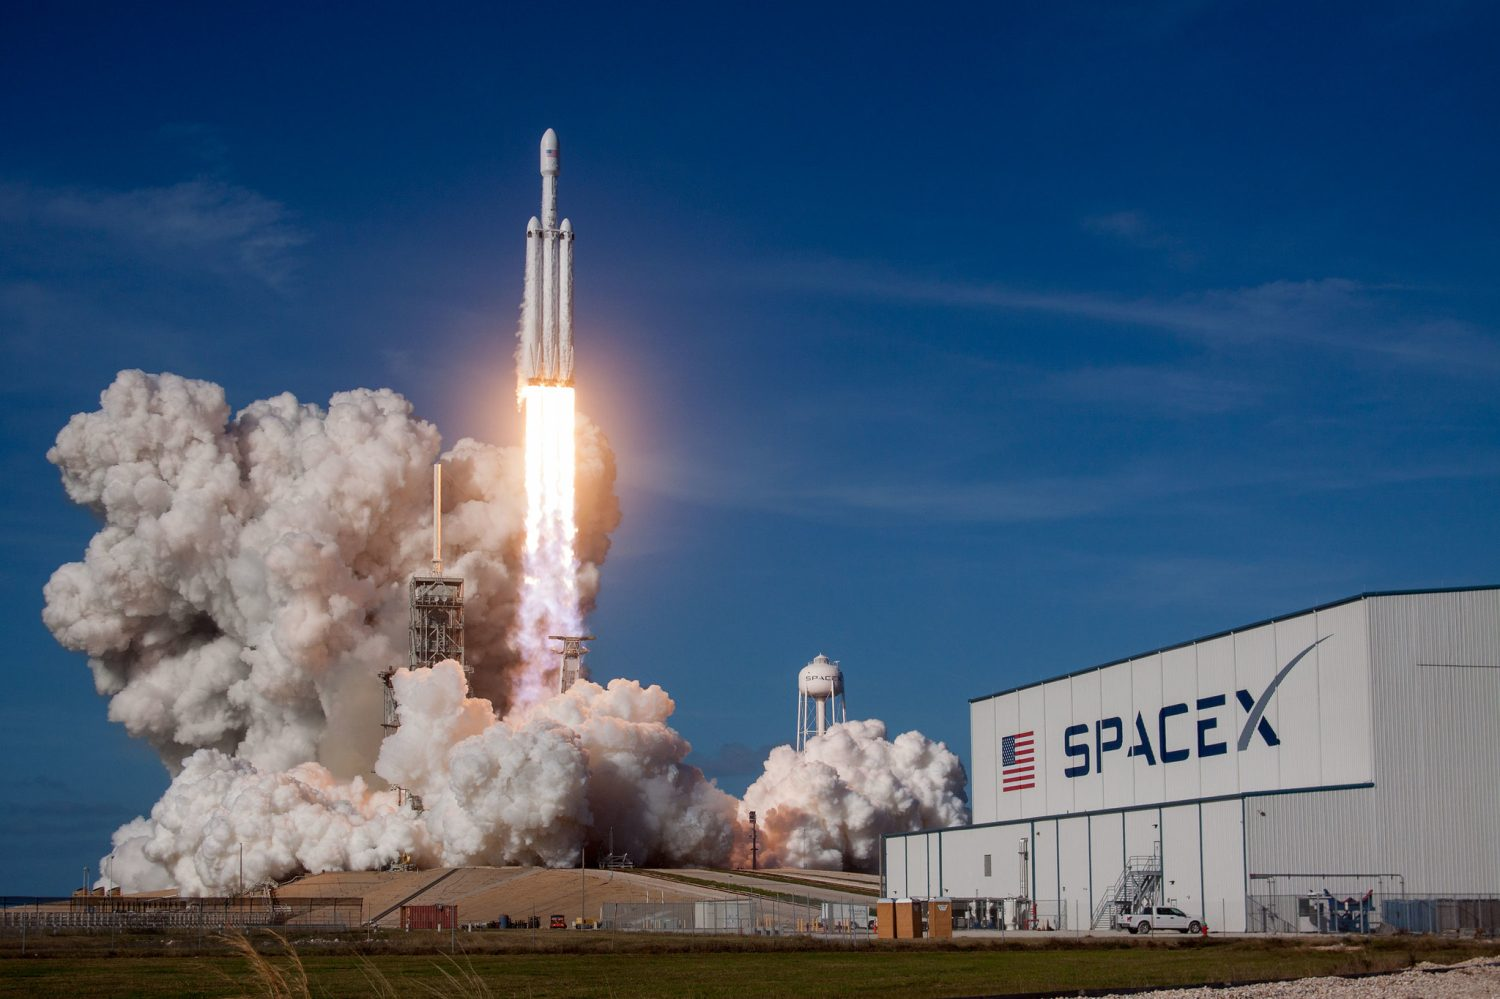 SpaceX Falcon Heavy nearing completion for July launch - Space Explored